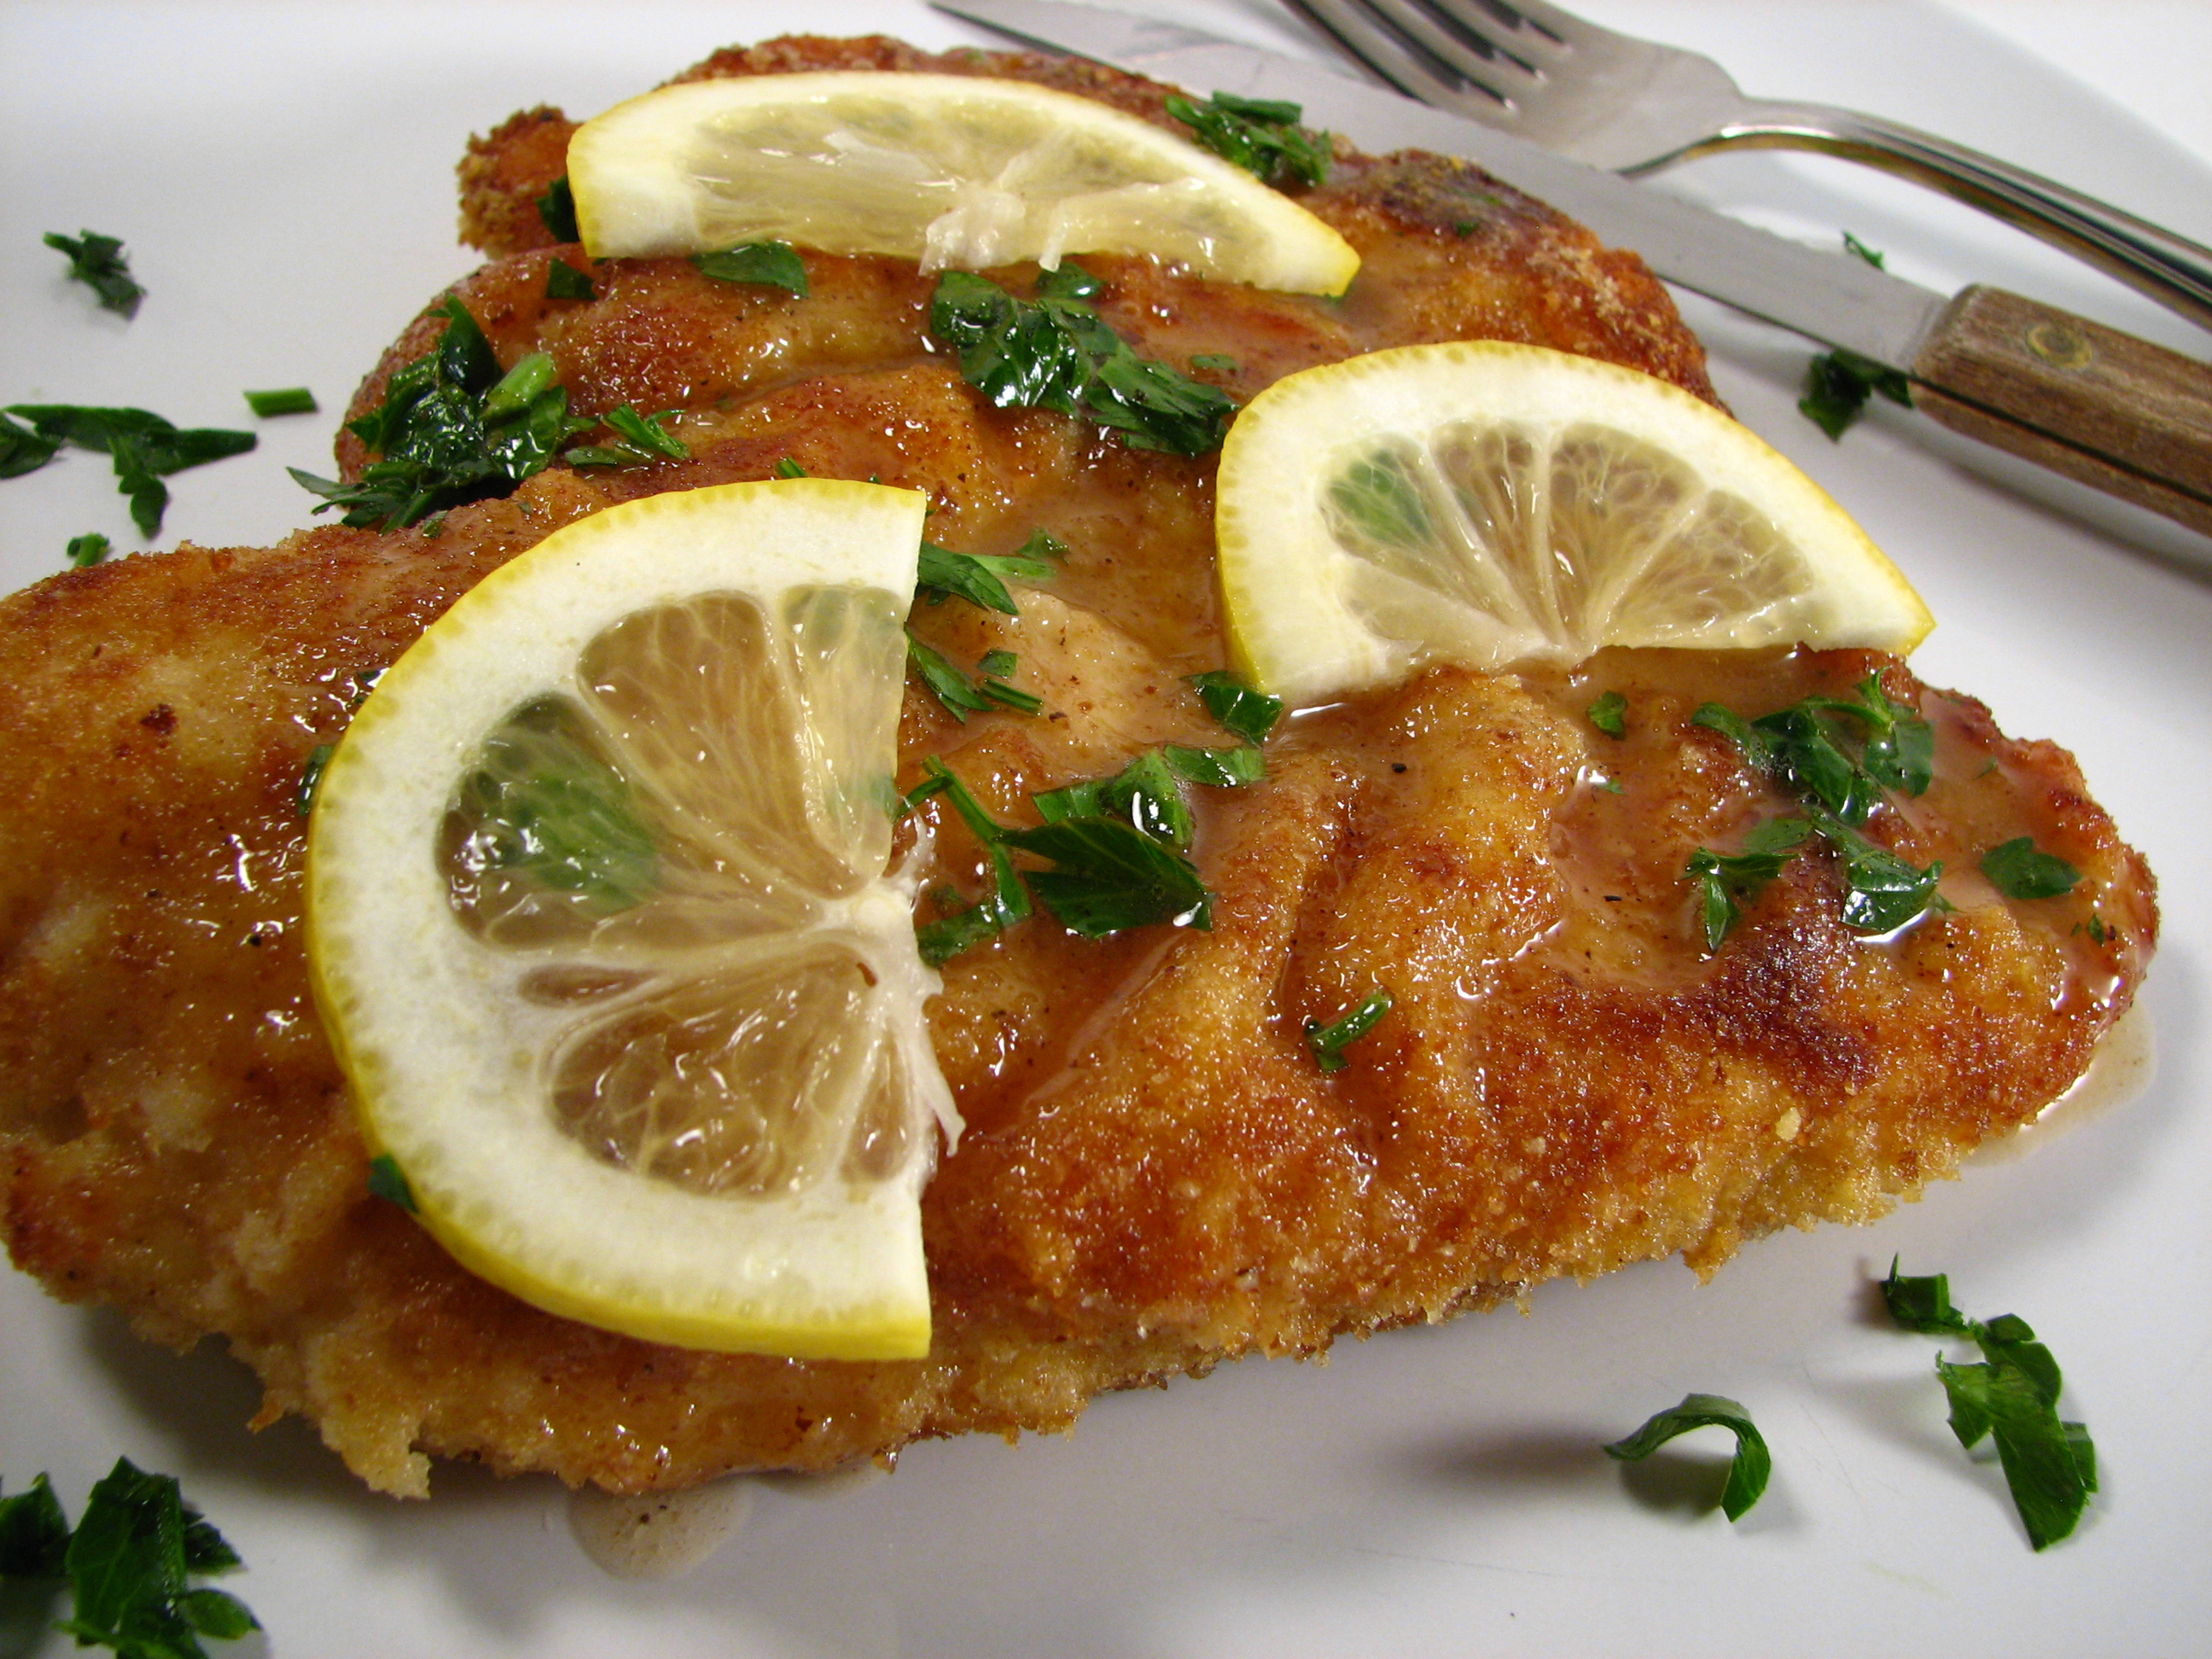 File:Chicken piccata.jpg